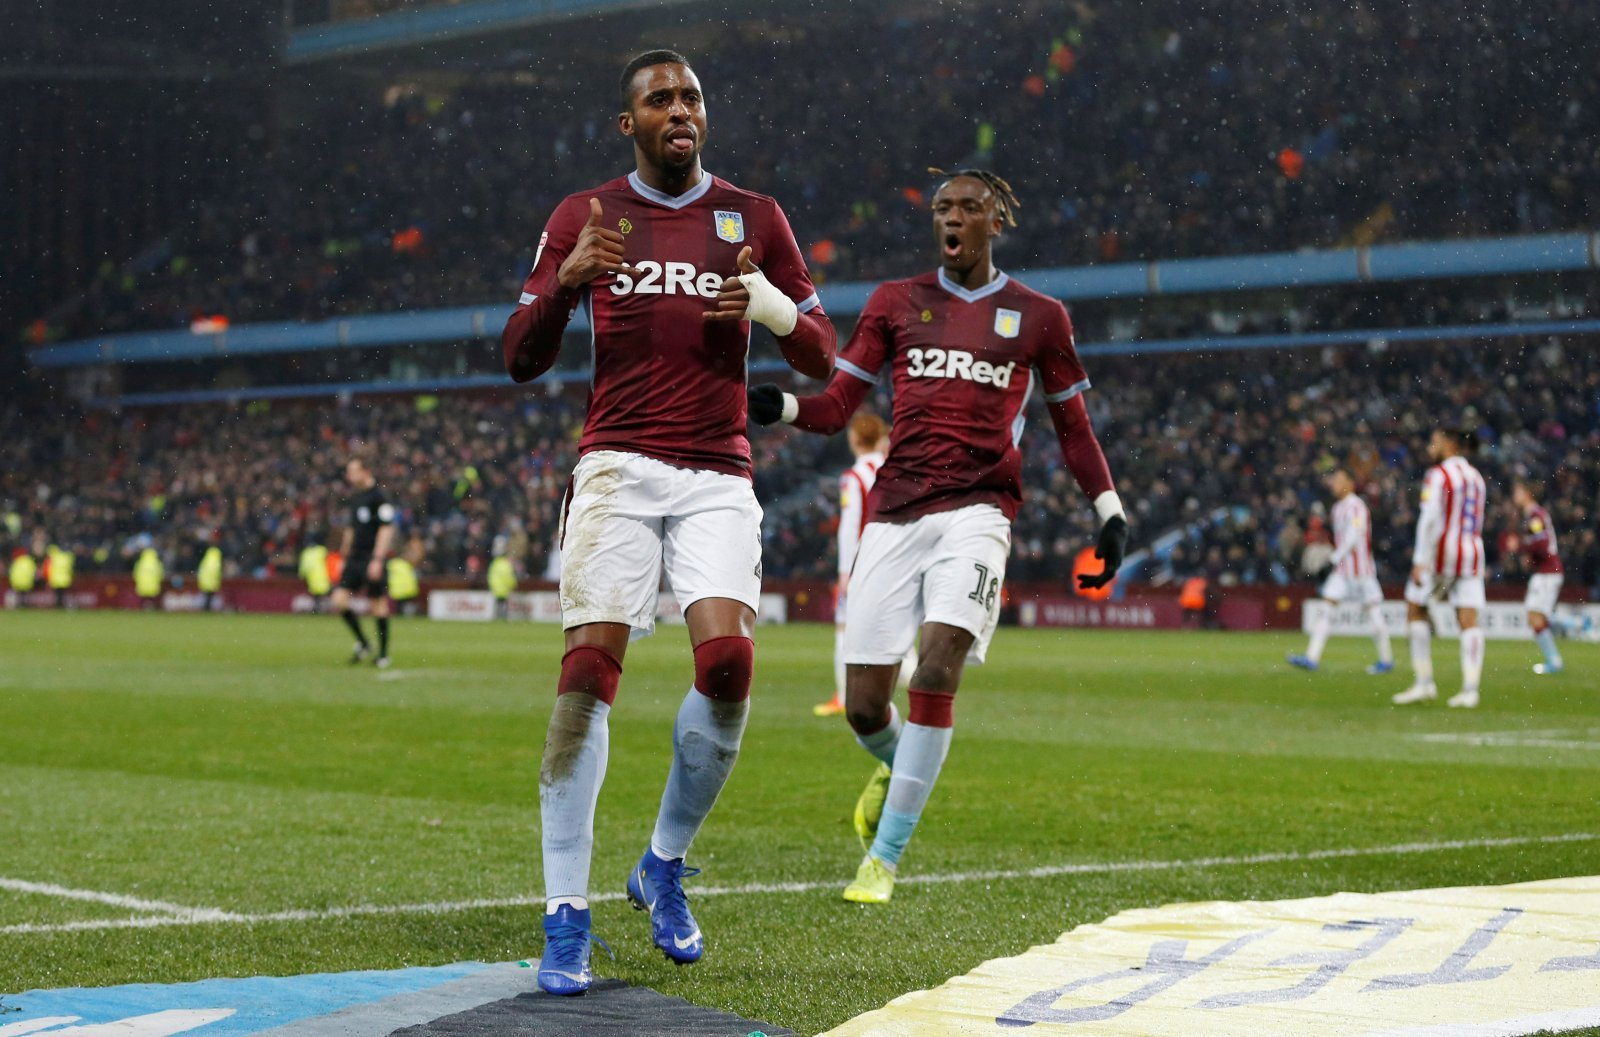 Aston Villa: Clubs from France and Qatar interested in signing Jonathan Kodjia